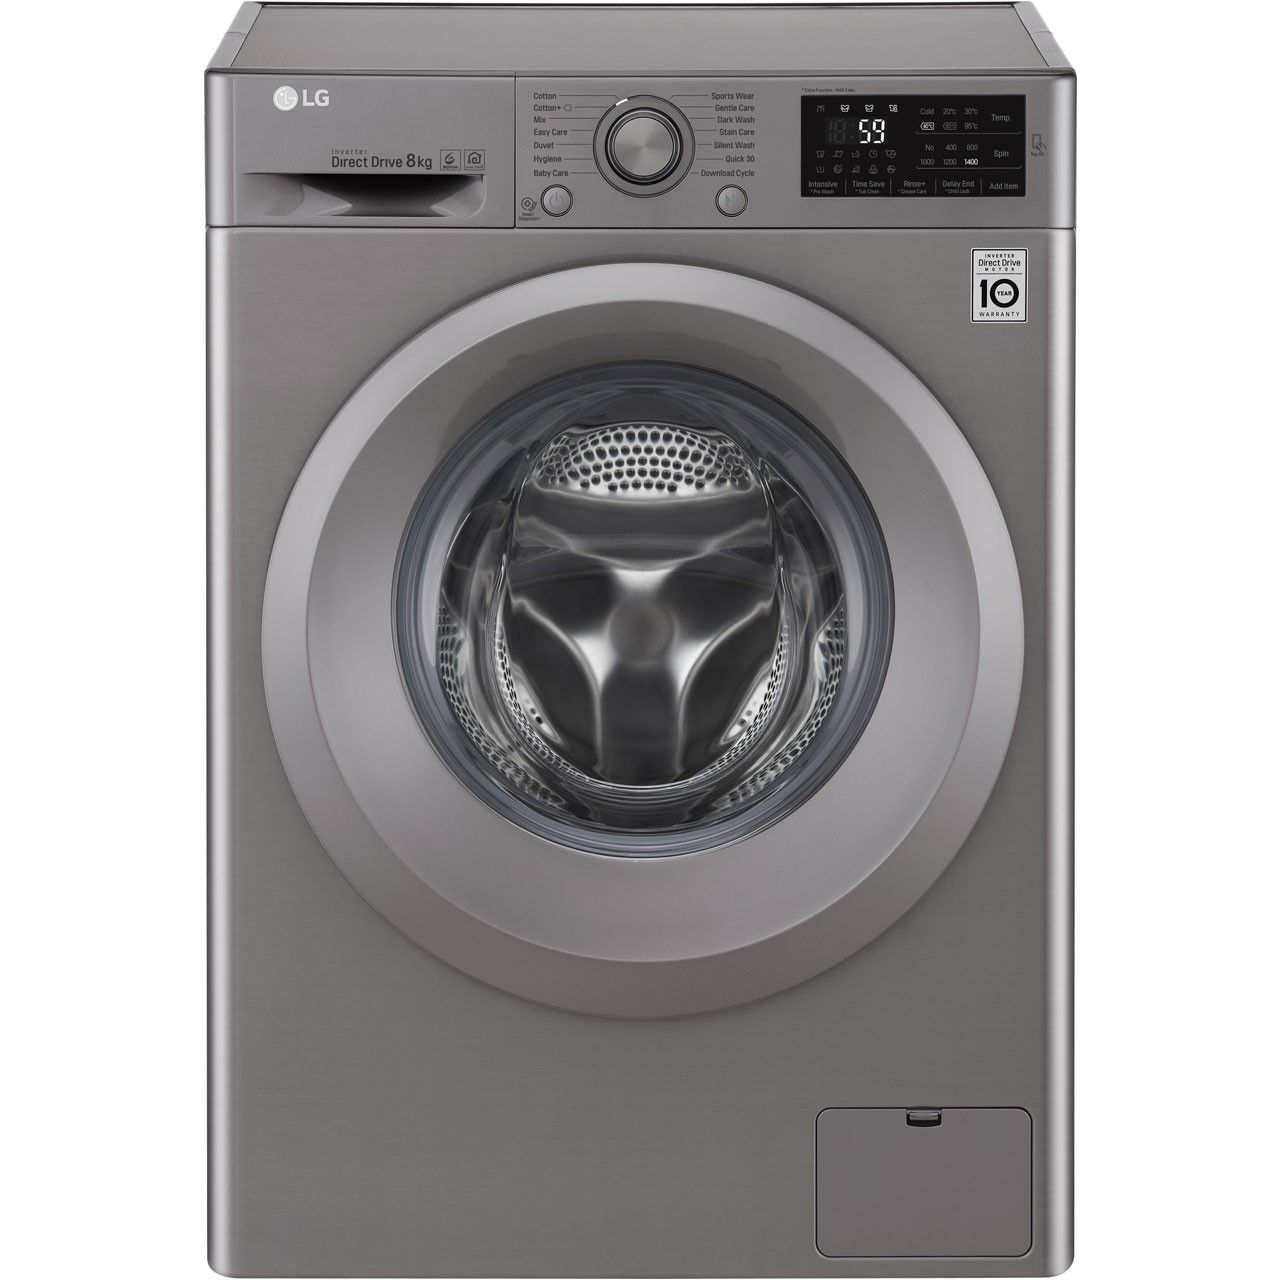 Lg F4j5tn7s 8kg Washing Machine With 1400 Rpm Stainless Steel 649 00 Lg Https Bestbuycyprus Com Washing Ma Washing Machine Cool Things To Buy Machine